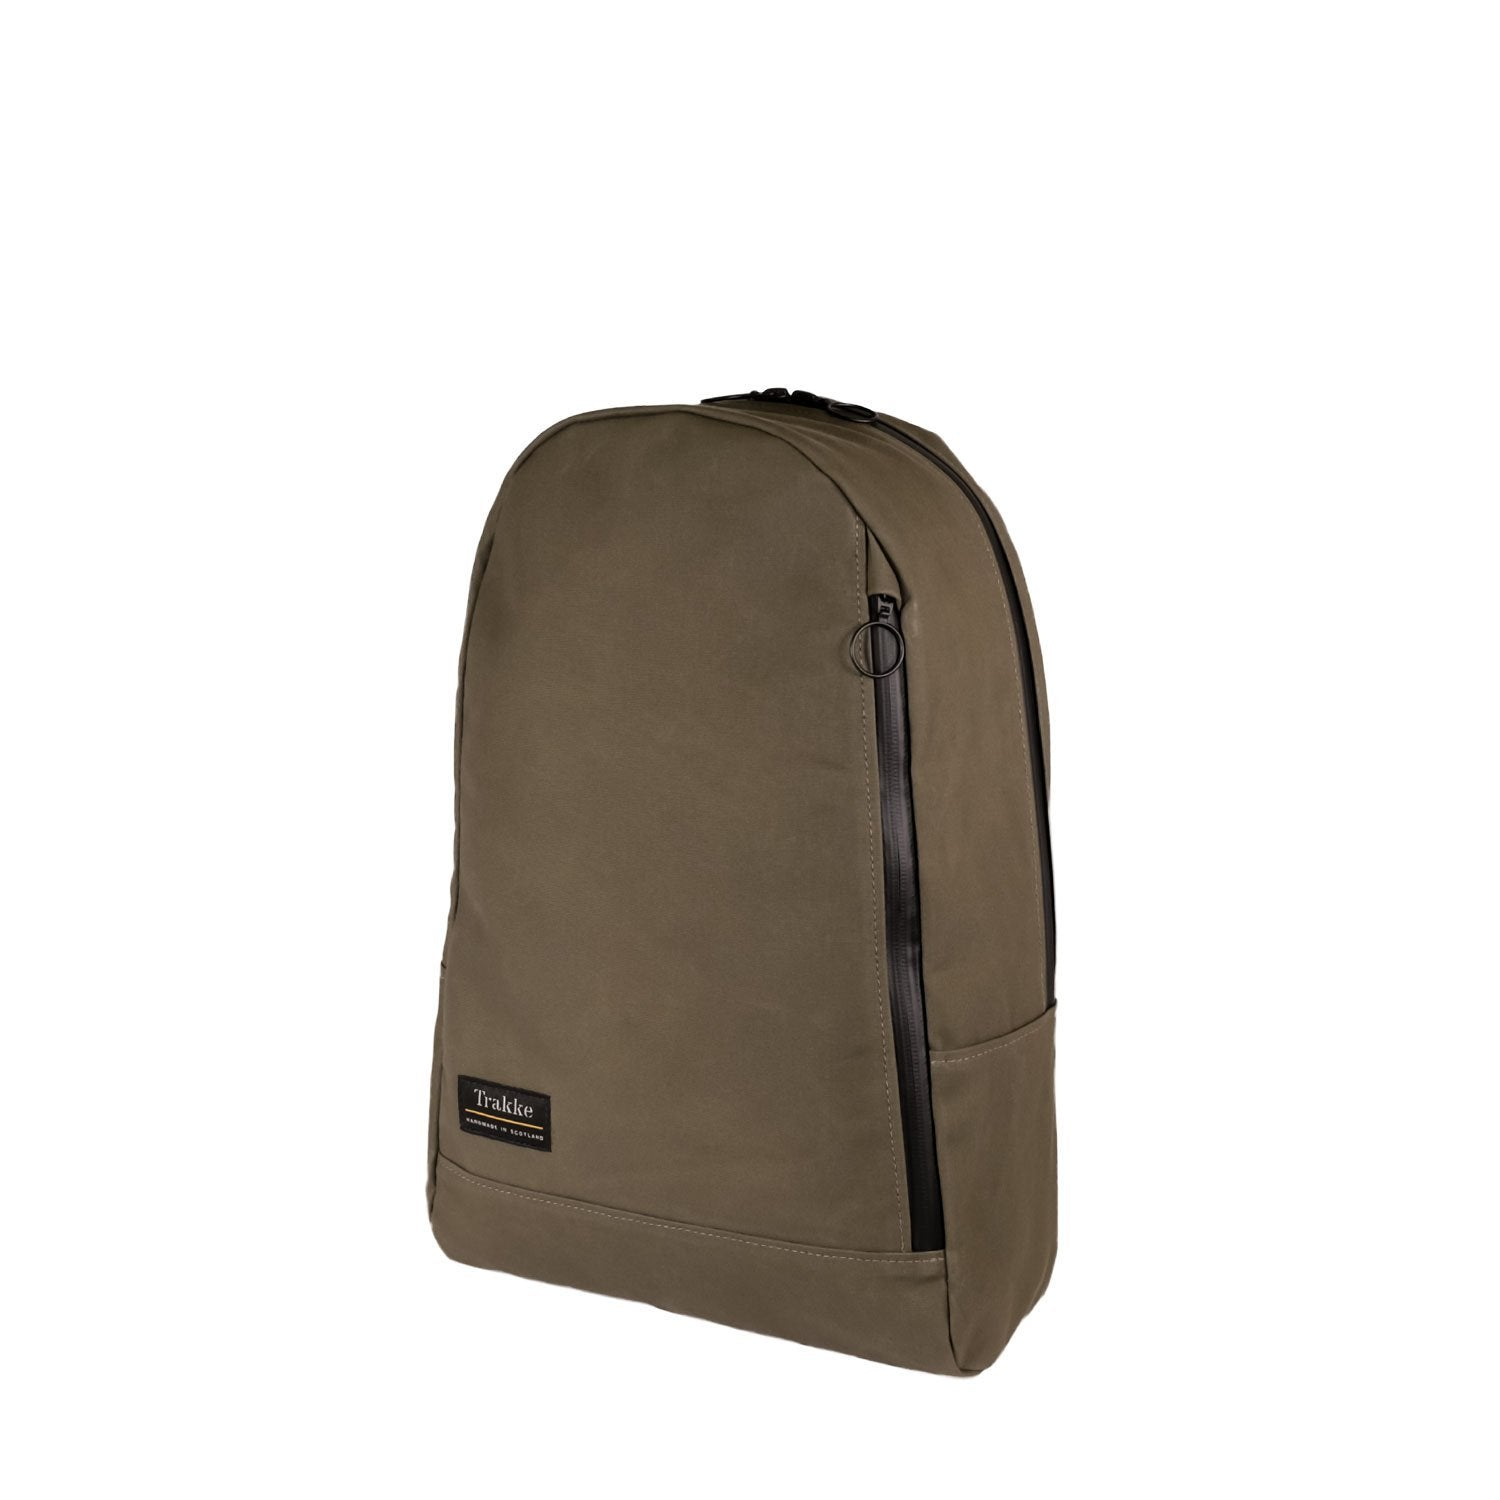 Trakke | NEW Fingal Backpack | Waxed Canvas Backpack | Laptop Rucksack - Olive